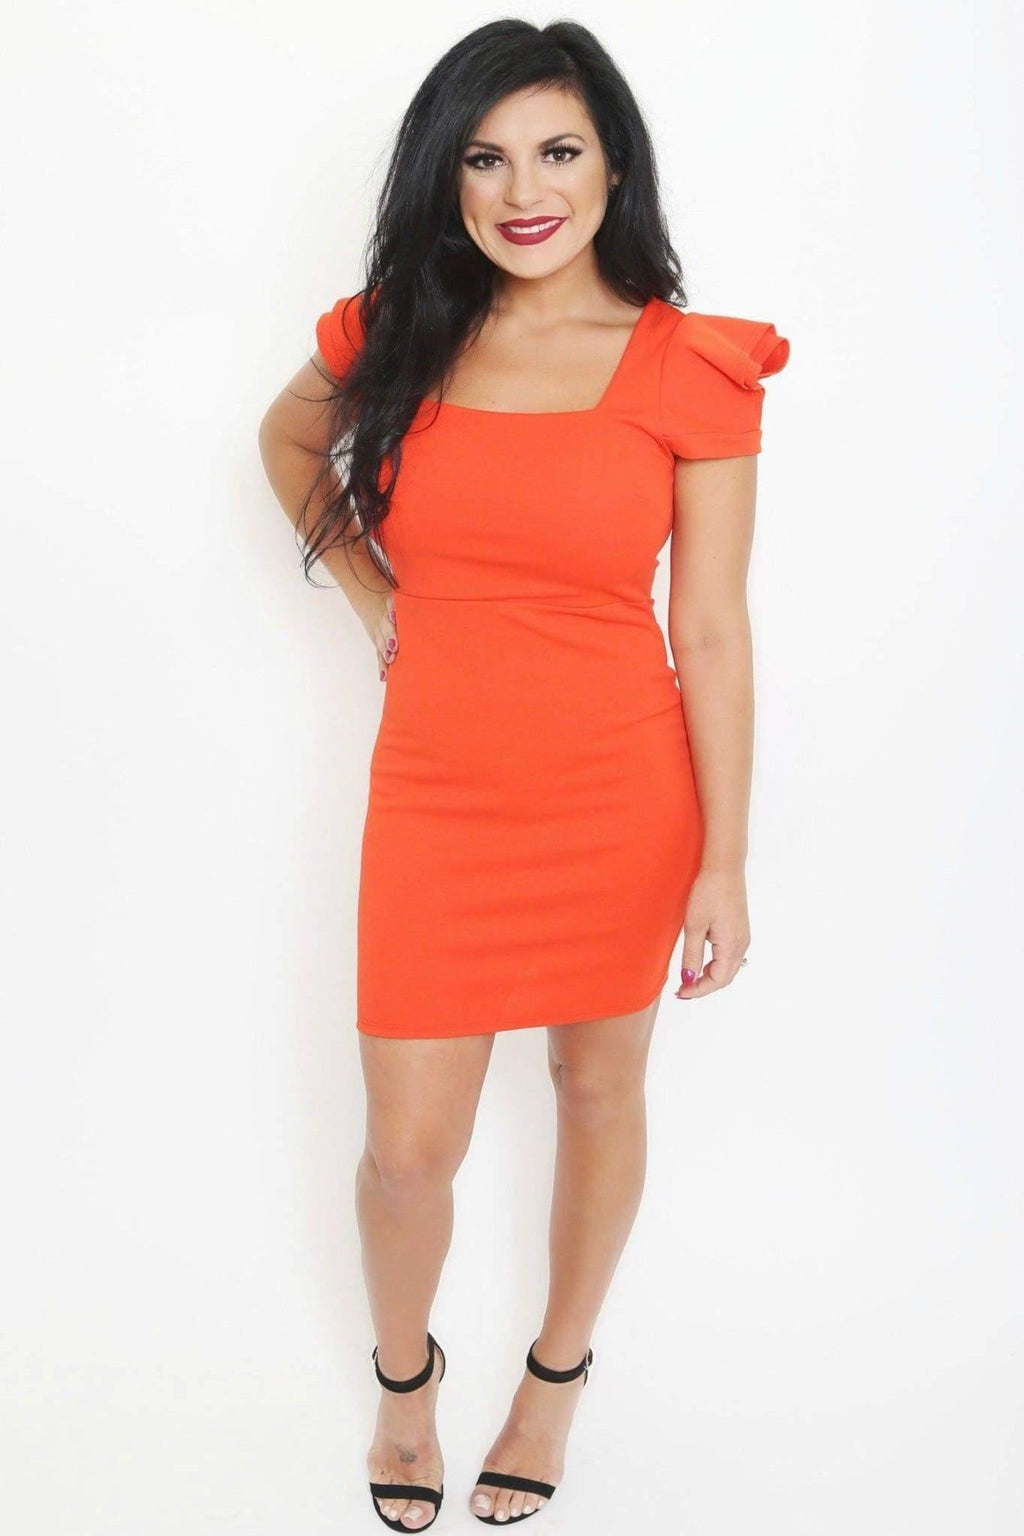 Puff Sleeve Mini Dress from Dresses Collection